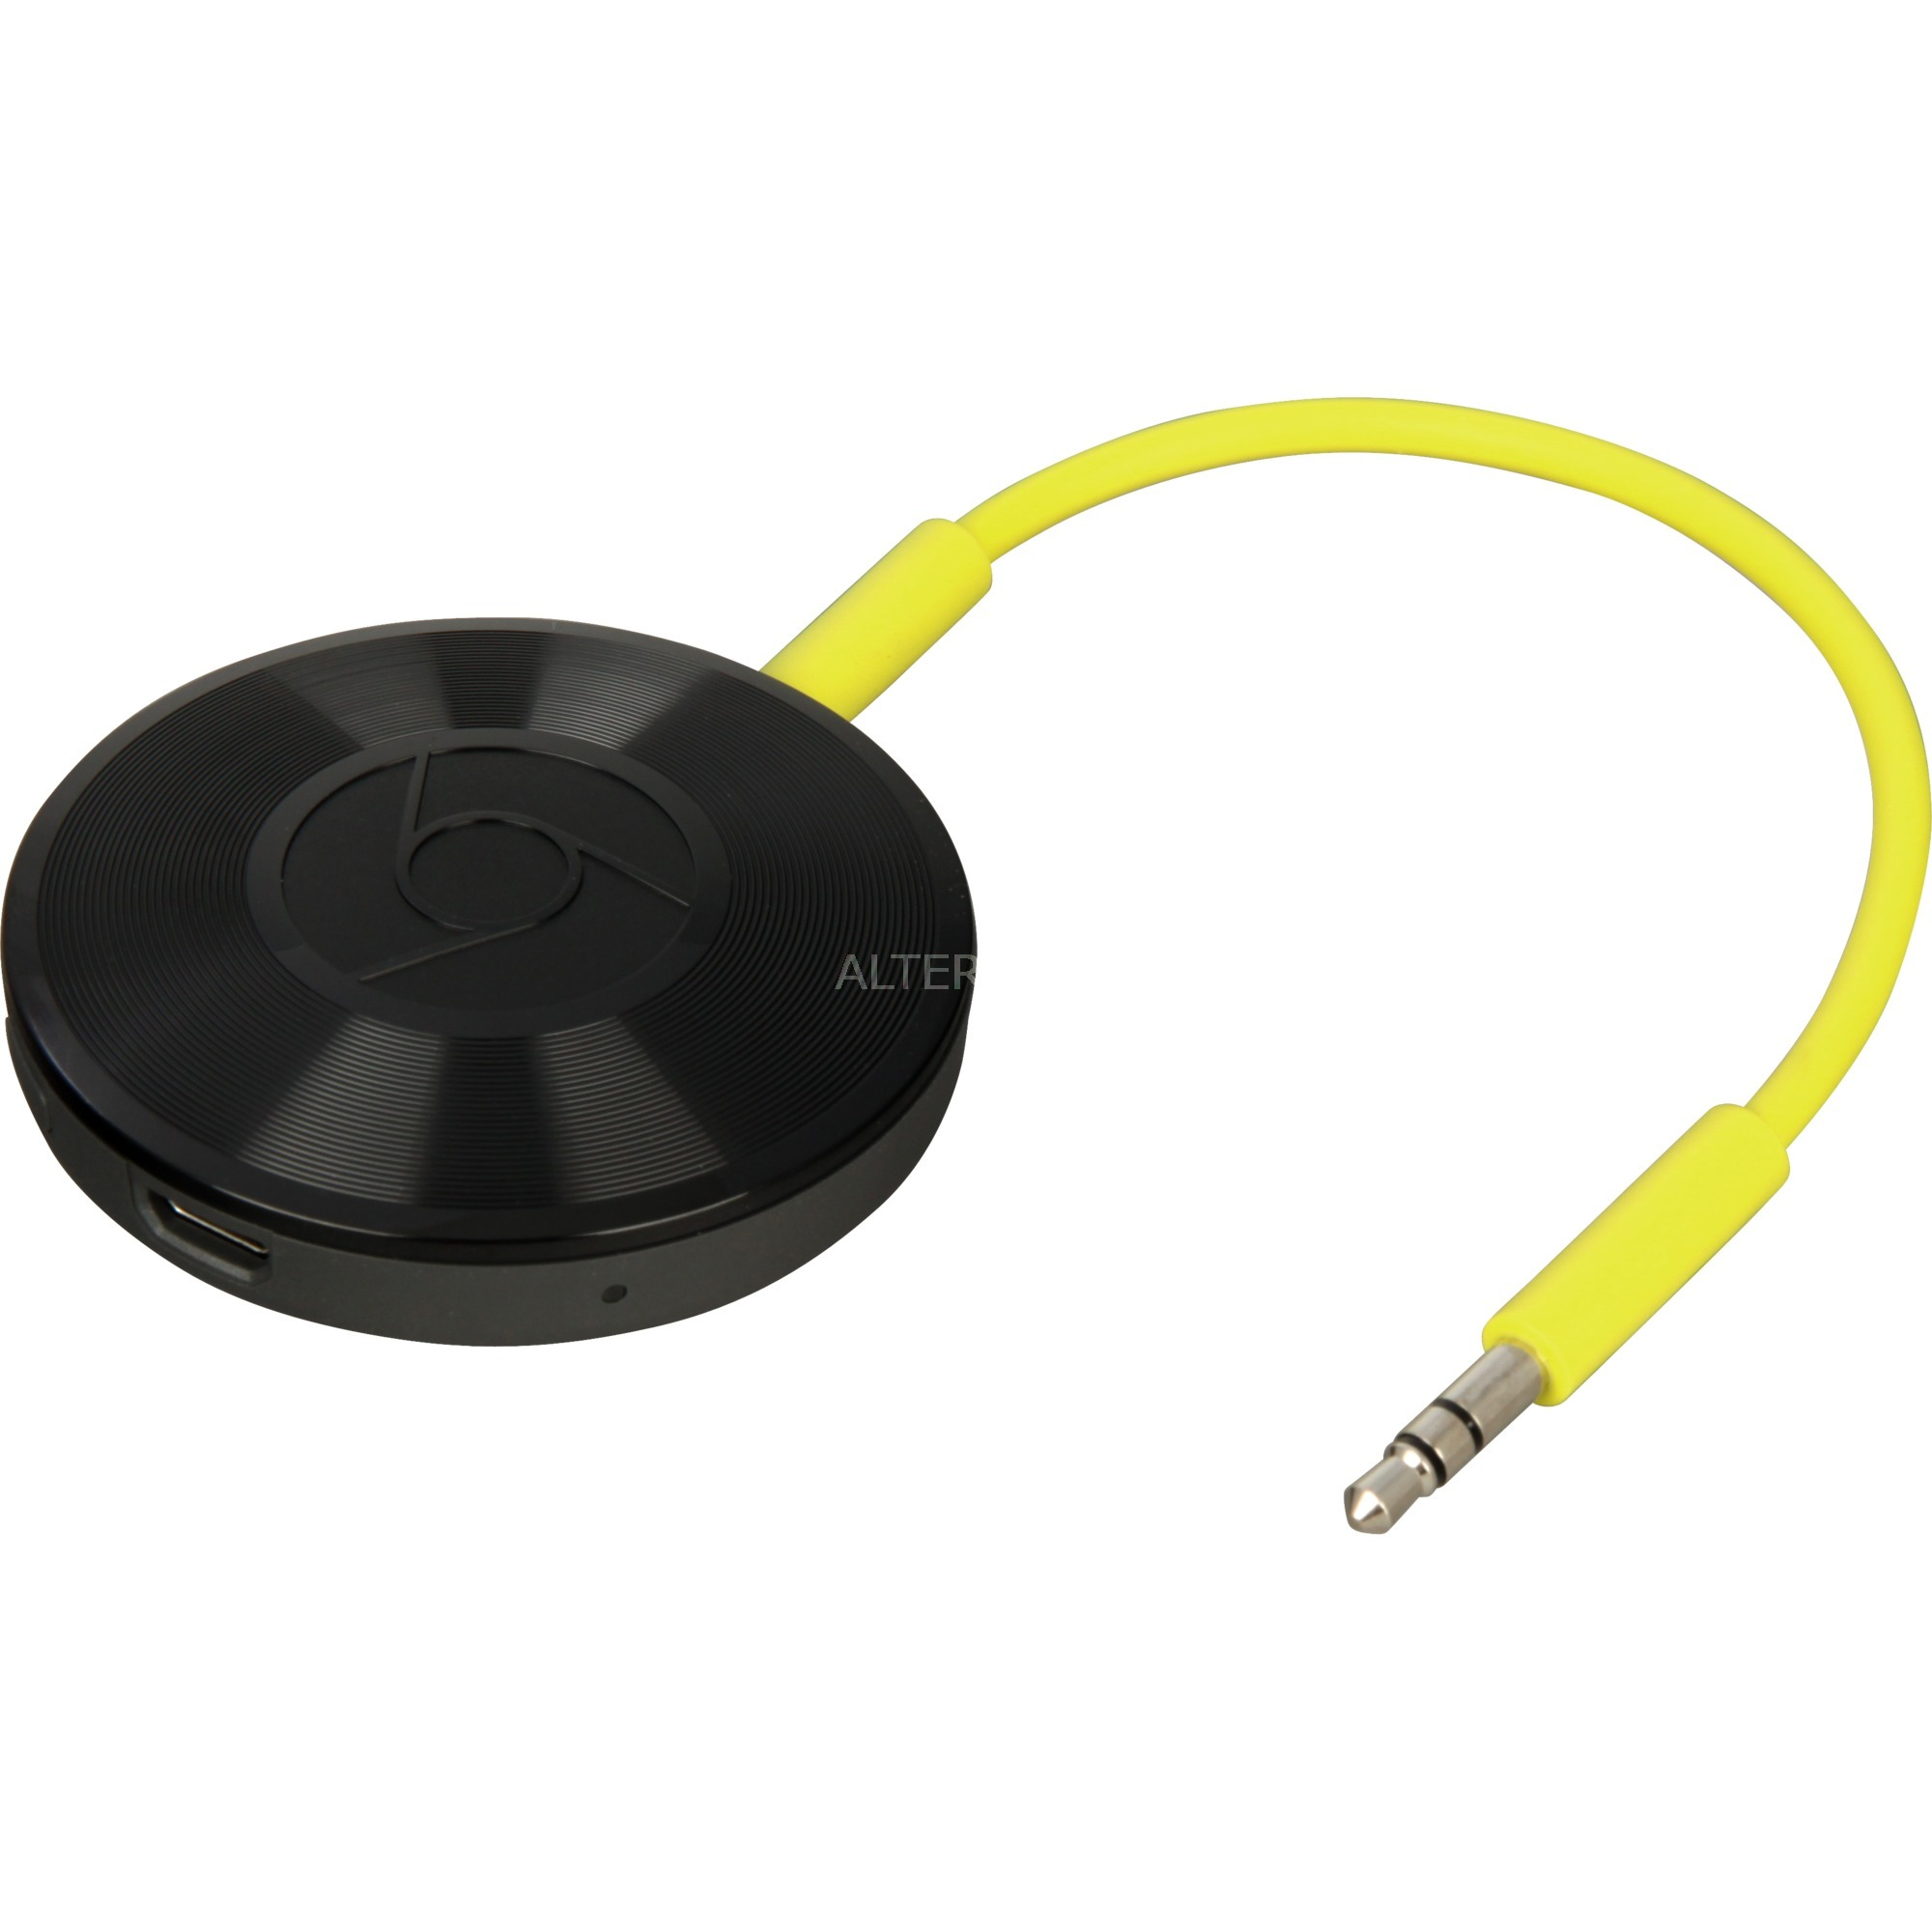 Chromecast Audio amplificador de audio digital Negro Wifi, Cliente streaming